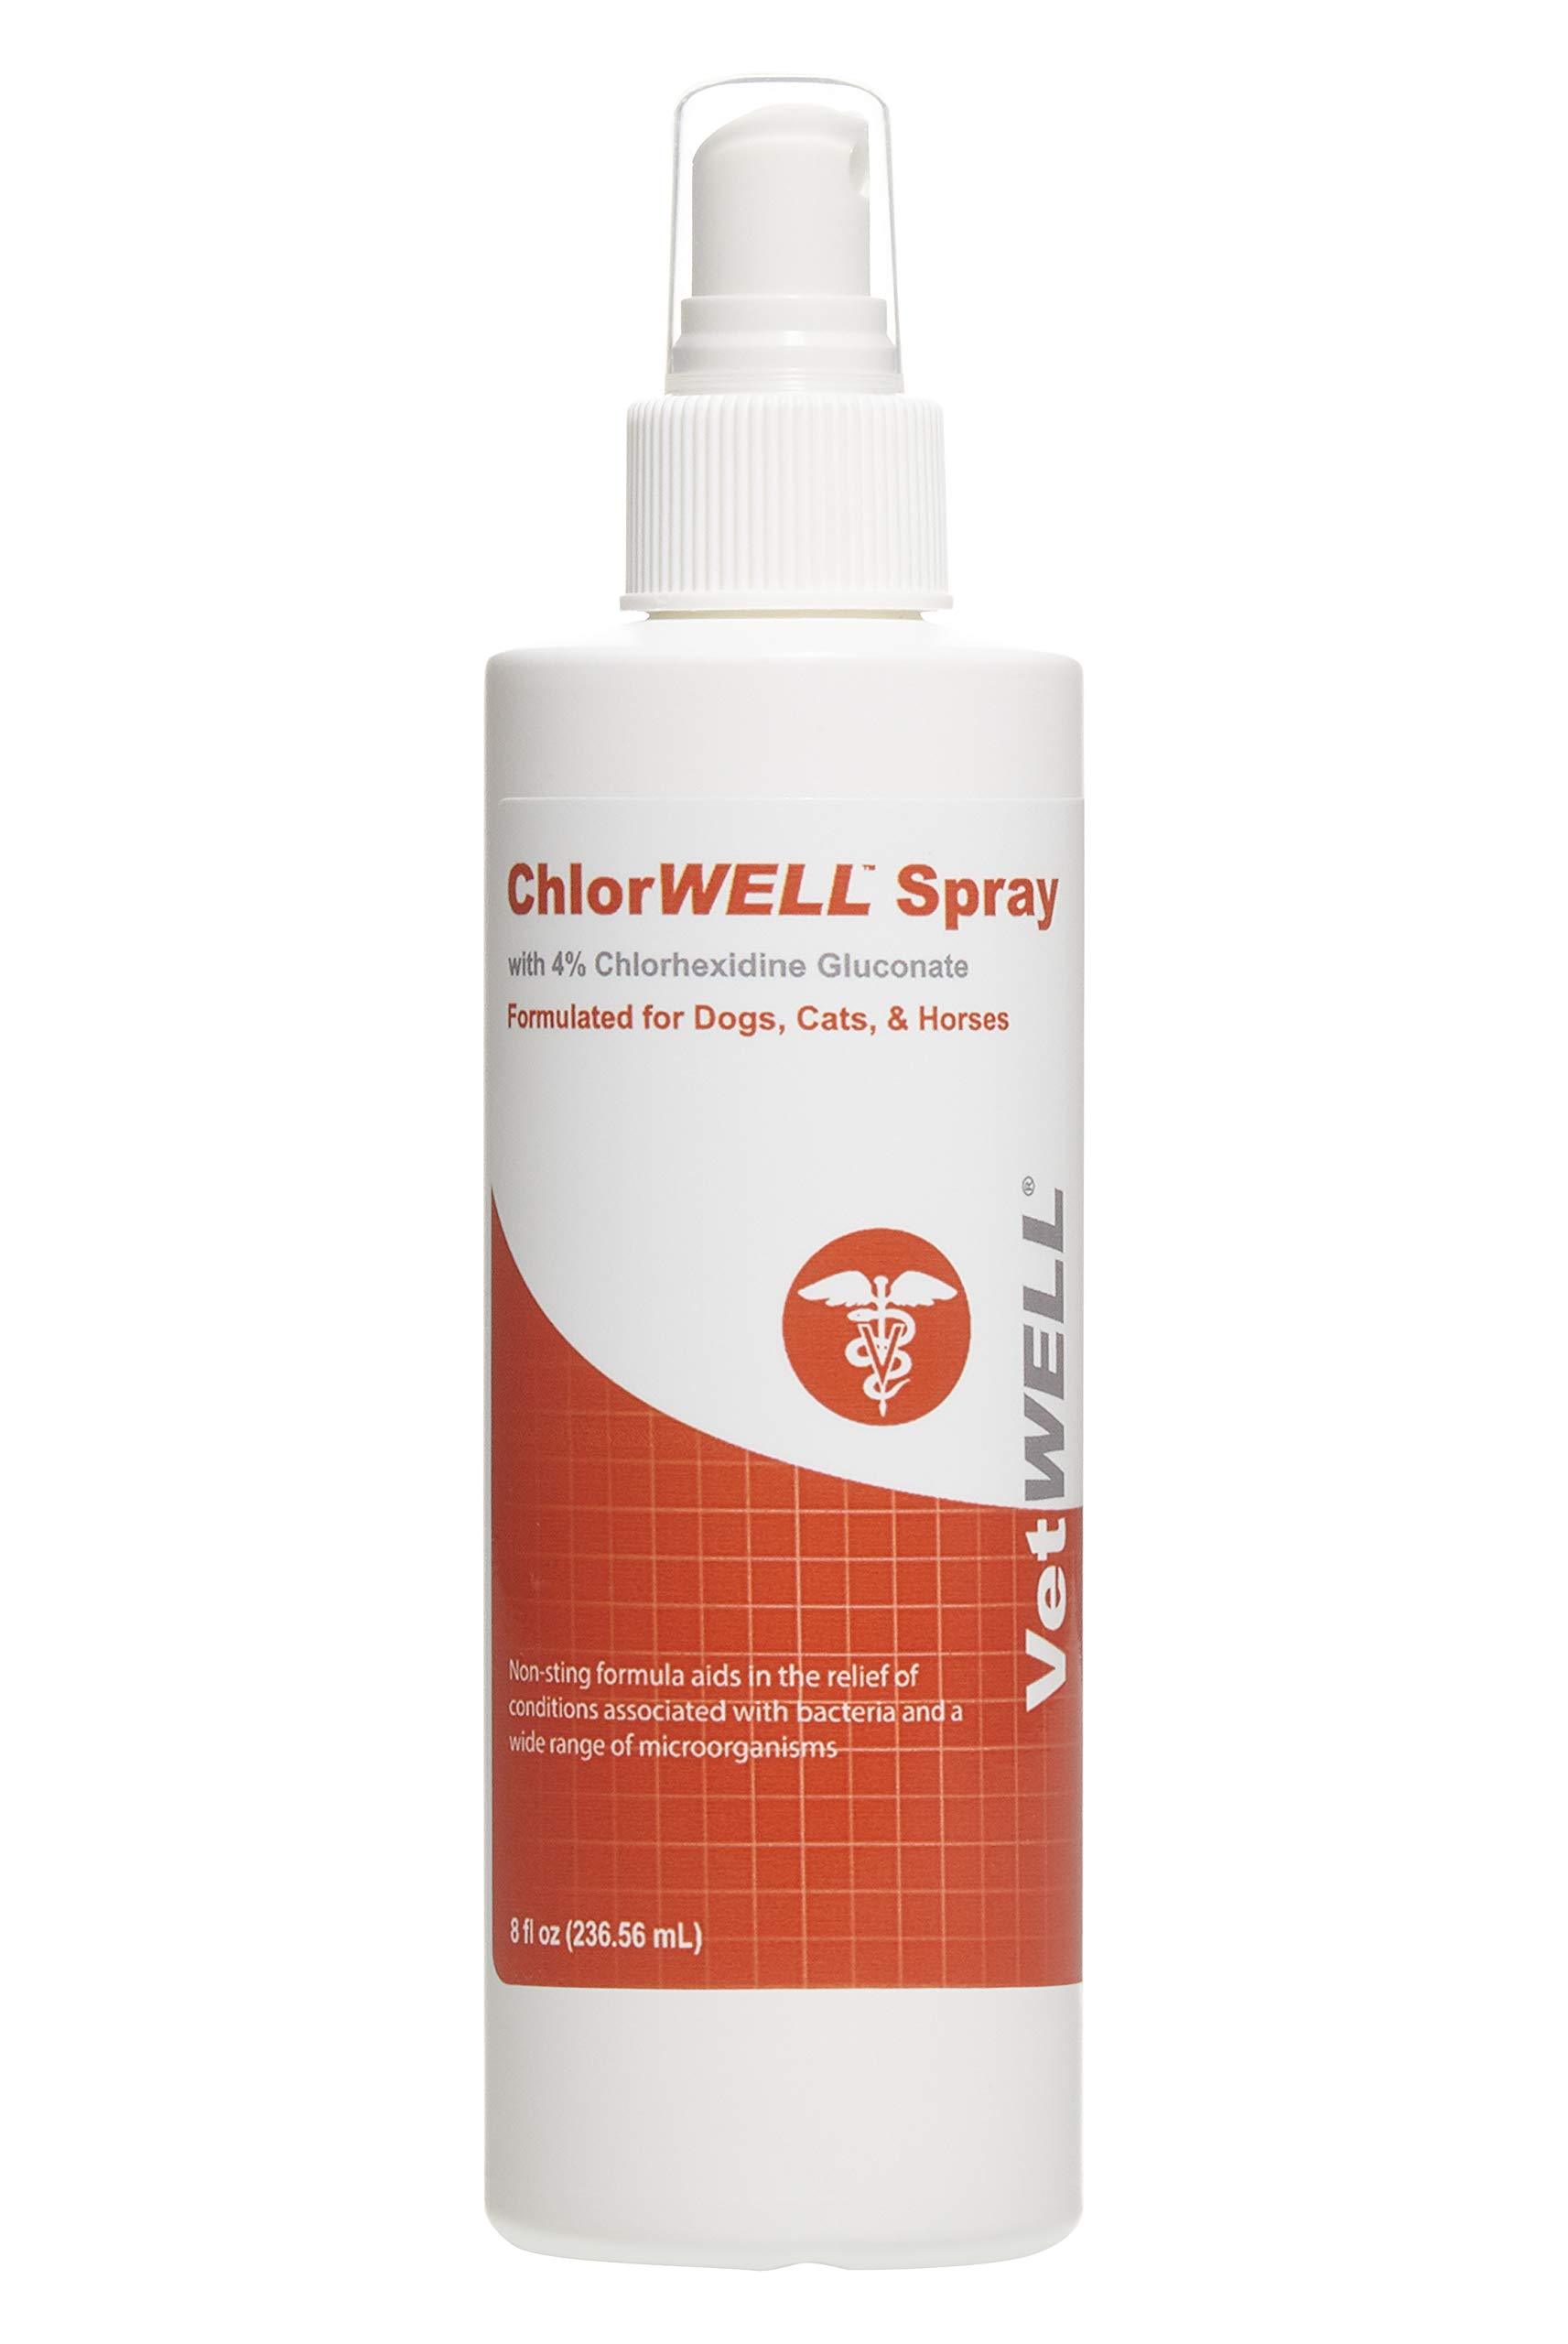 VetWELL Chlorhexidine 4% Spray for Dogs, Cats and Horses - Antibacterial Spray Treats Hot Spots, Insect Bites and Inflamed Itchy Skin - 8 oz by VetWELL